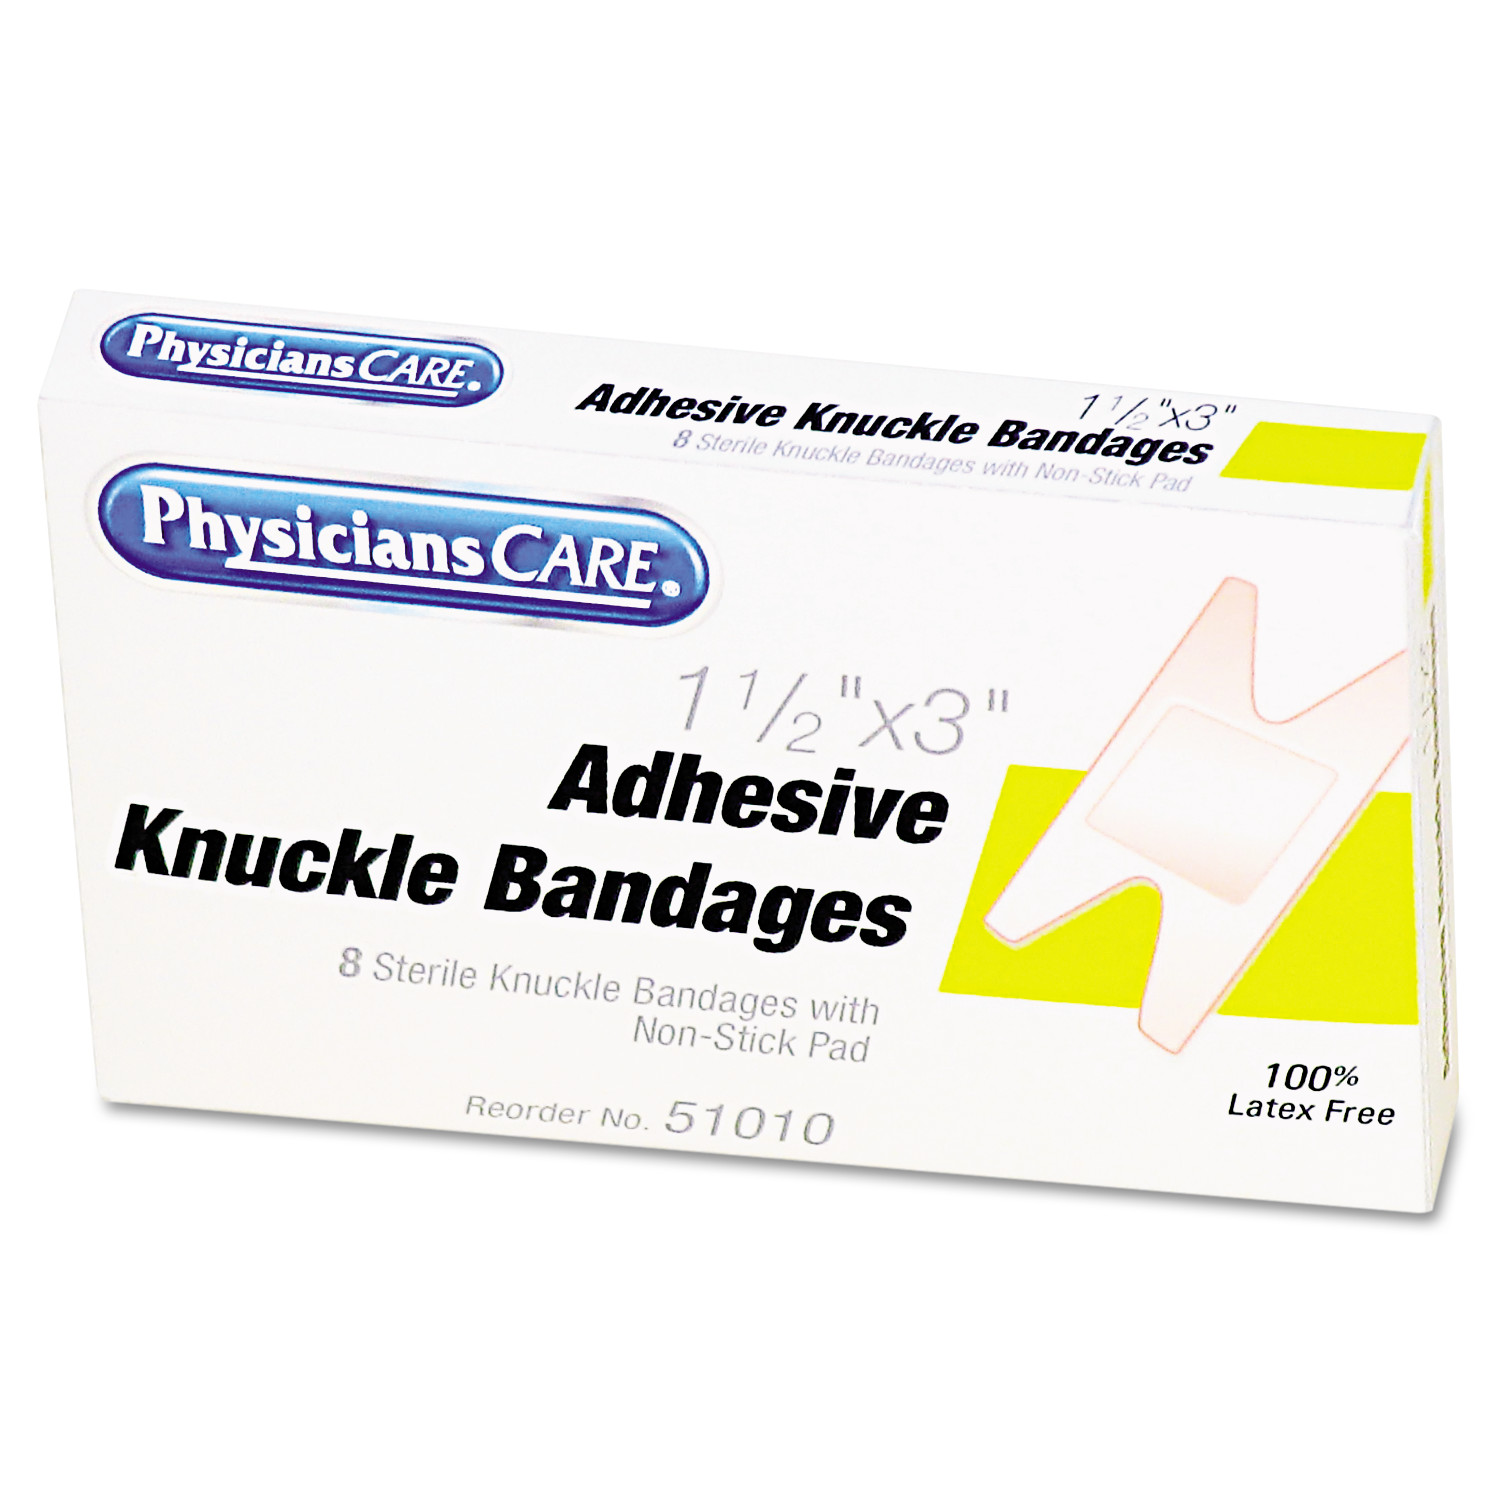 PhysiciansCare by First Aid Only First Aid Fabric Knuckle Bandages, 8/Box